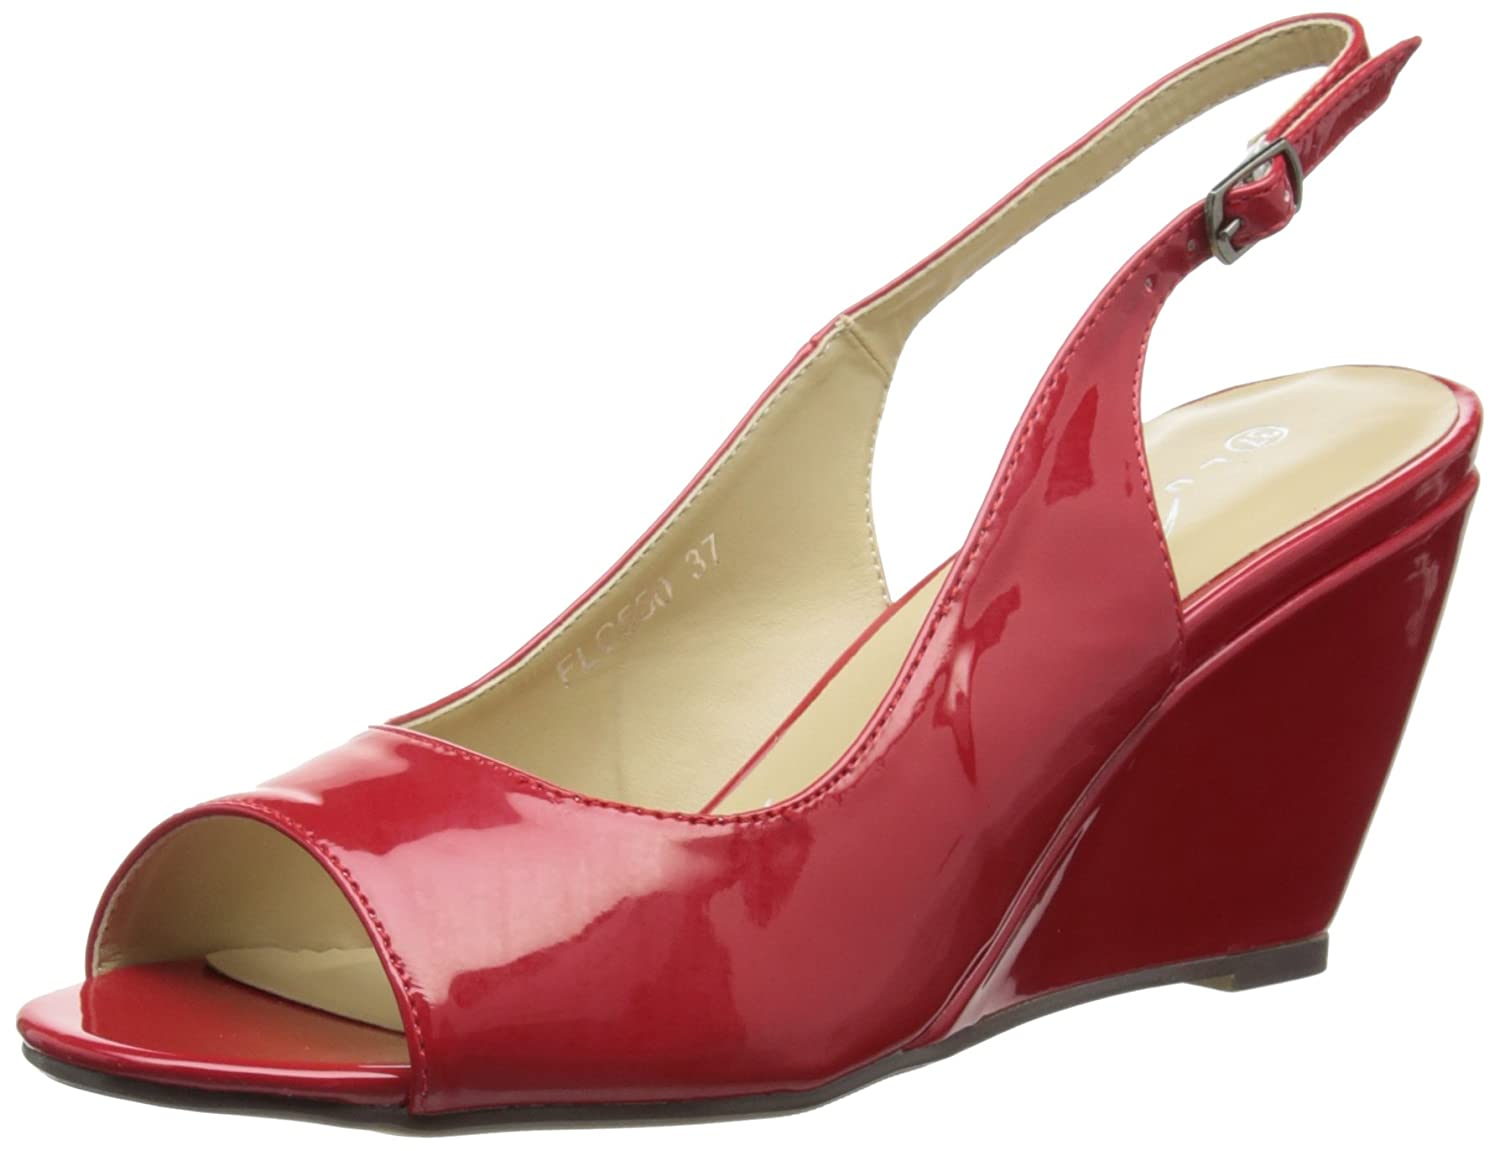 Lunar 19142 (Red) Flc550, Rouge Sandales femme Rouge (Red) a67df08 - latesttechnology.space